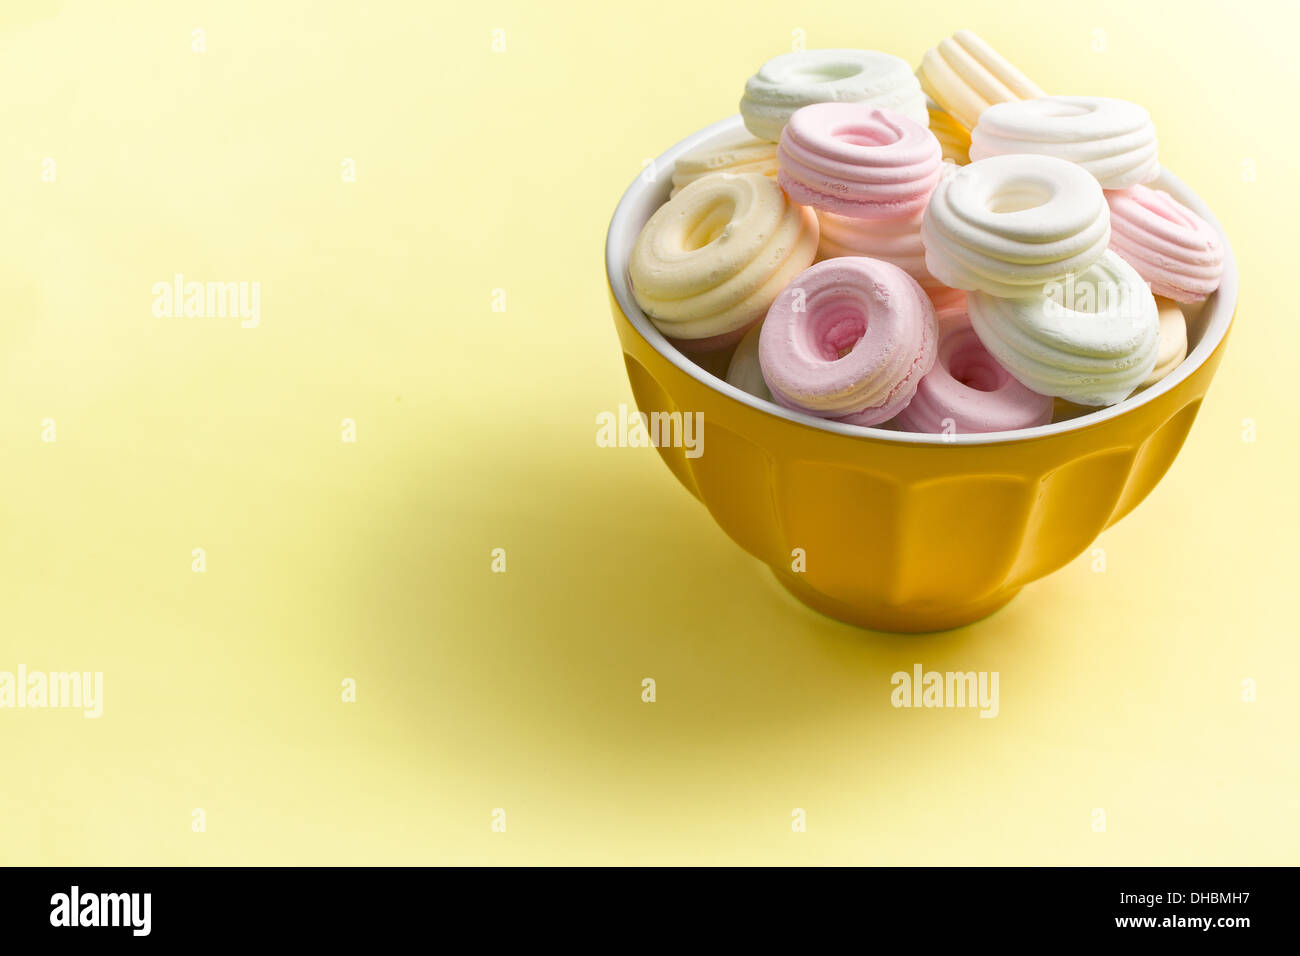 colorful meringues in ceramic bowl on yellow background - Stock Image